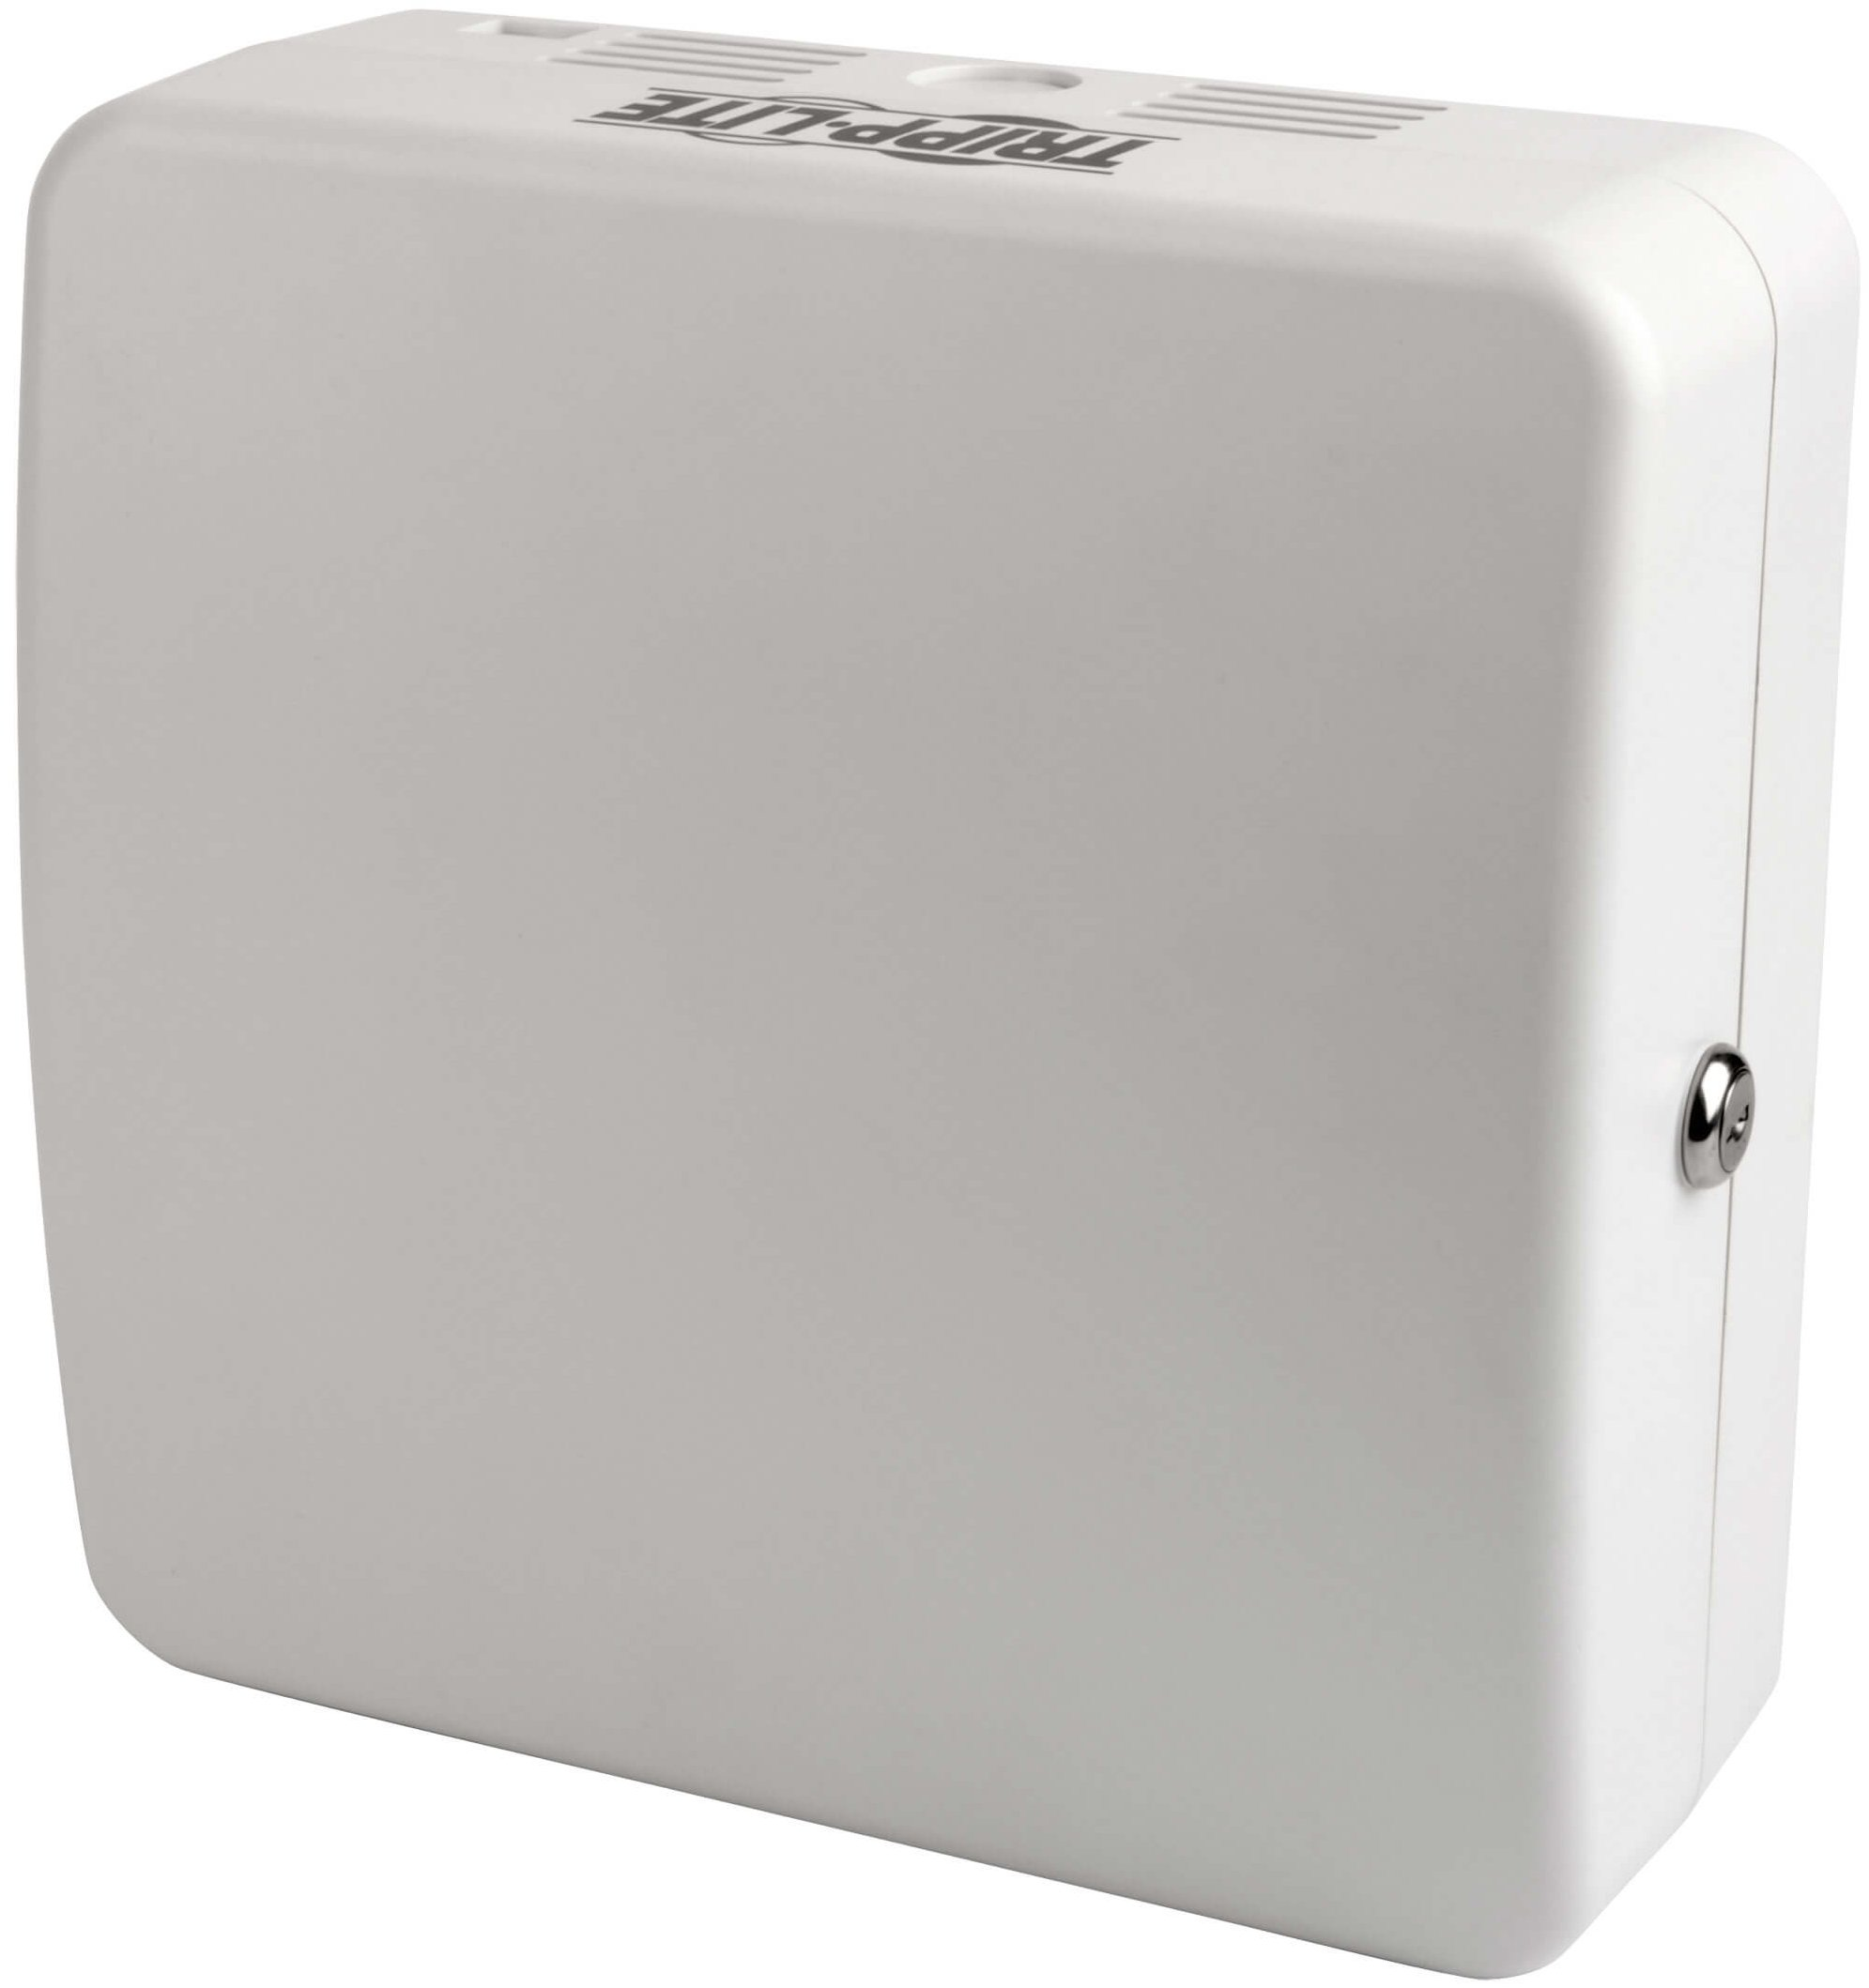 Access Point Wireless Enclosure